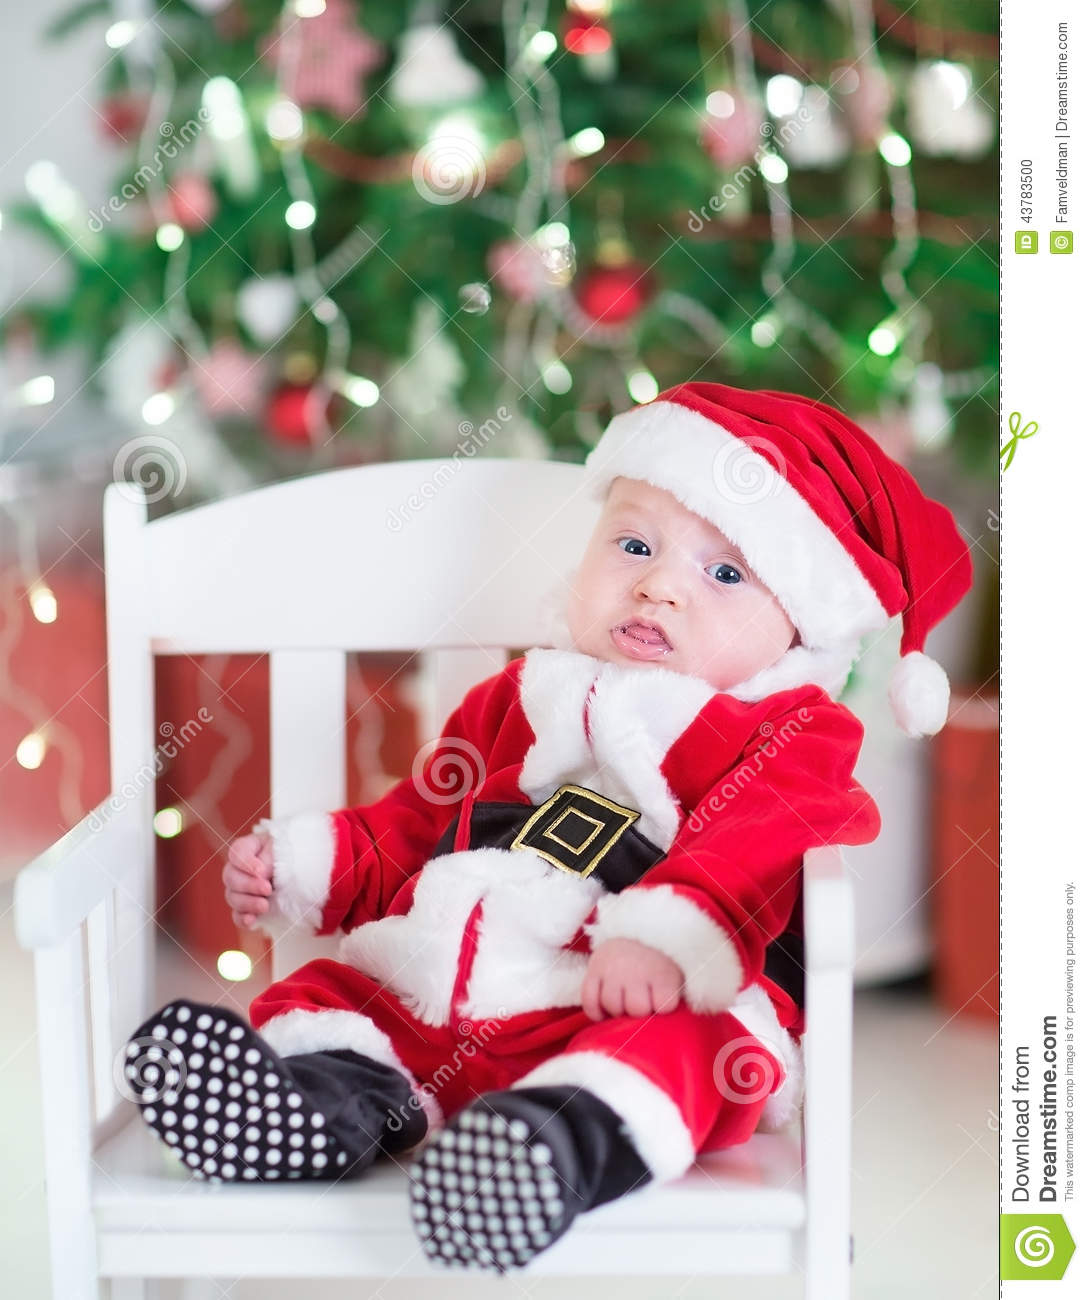 Newborn baby boy in Santa outfit sitting under Chr